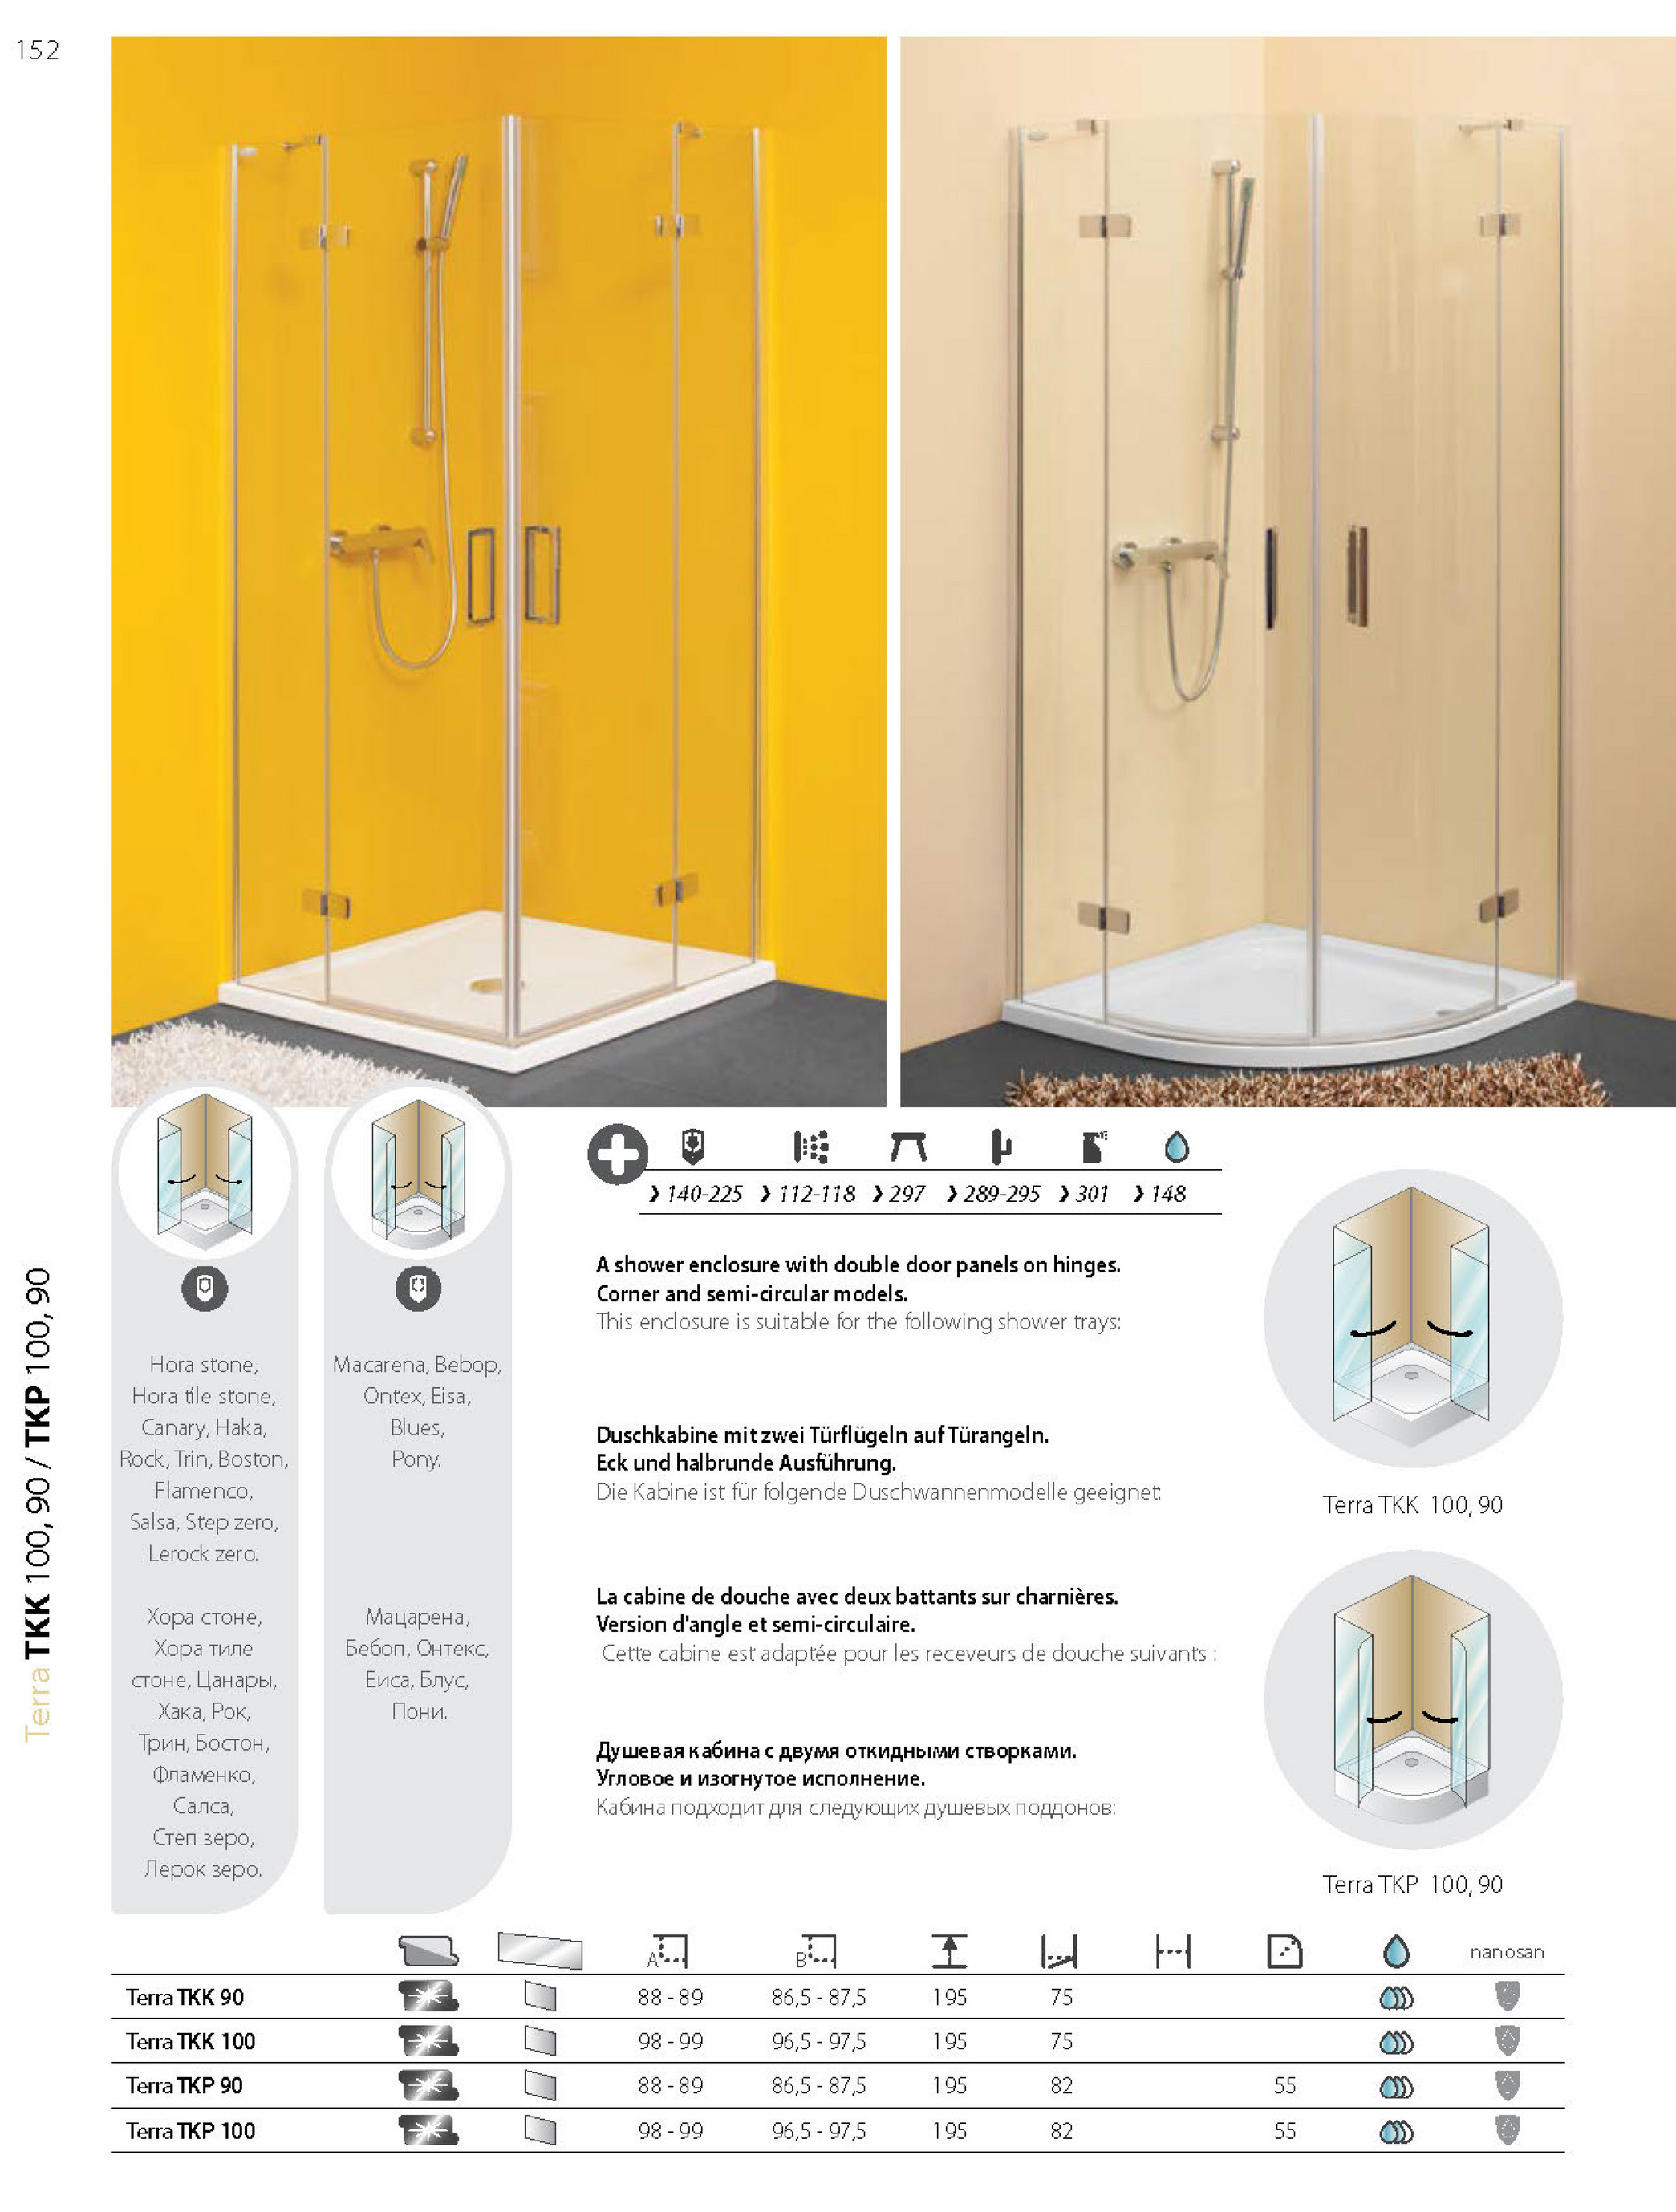 Halbrunde Duschkabine Tesign - Kolpa Shower Enclosures - Page 6-7 - Created With Publitas.com